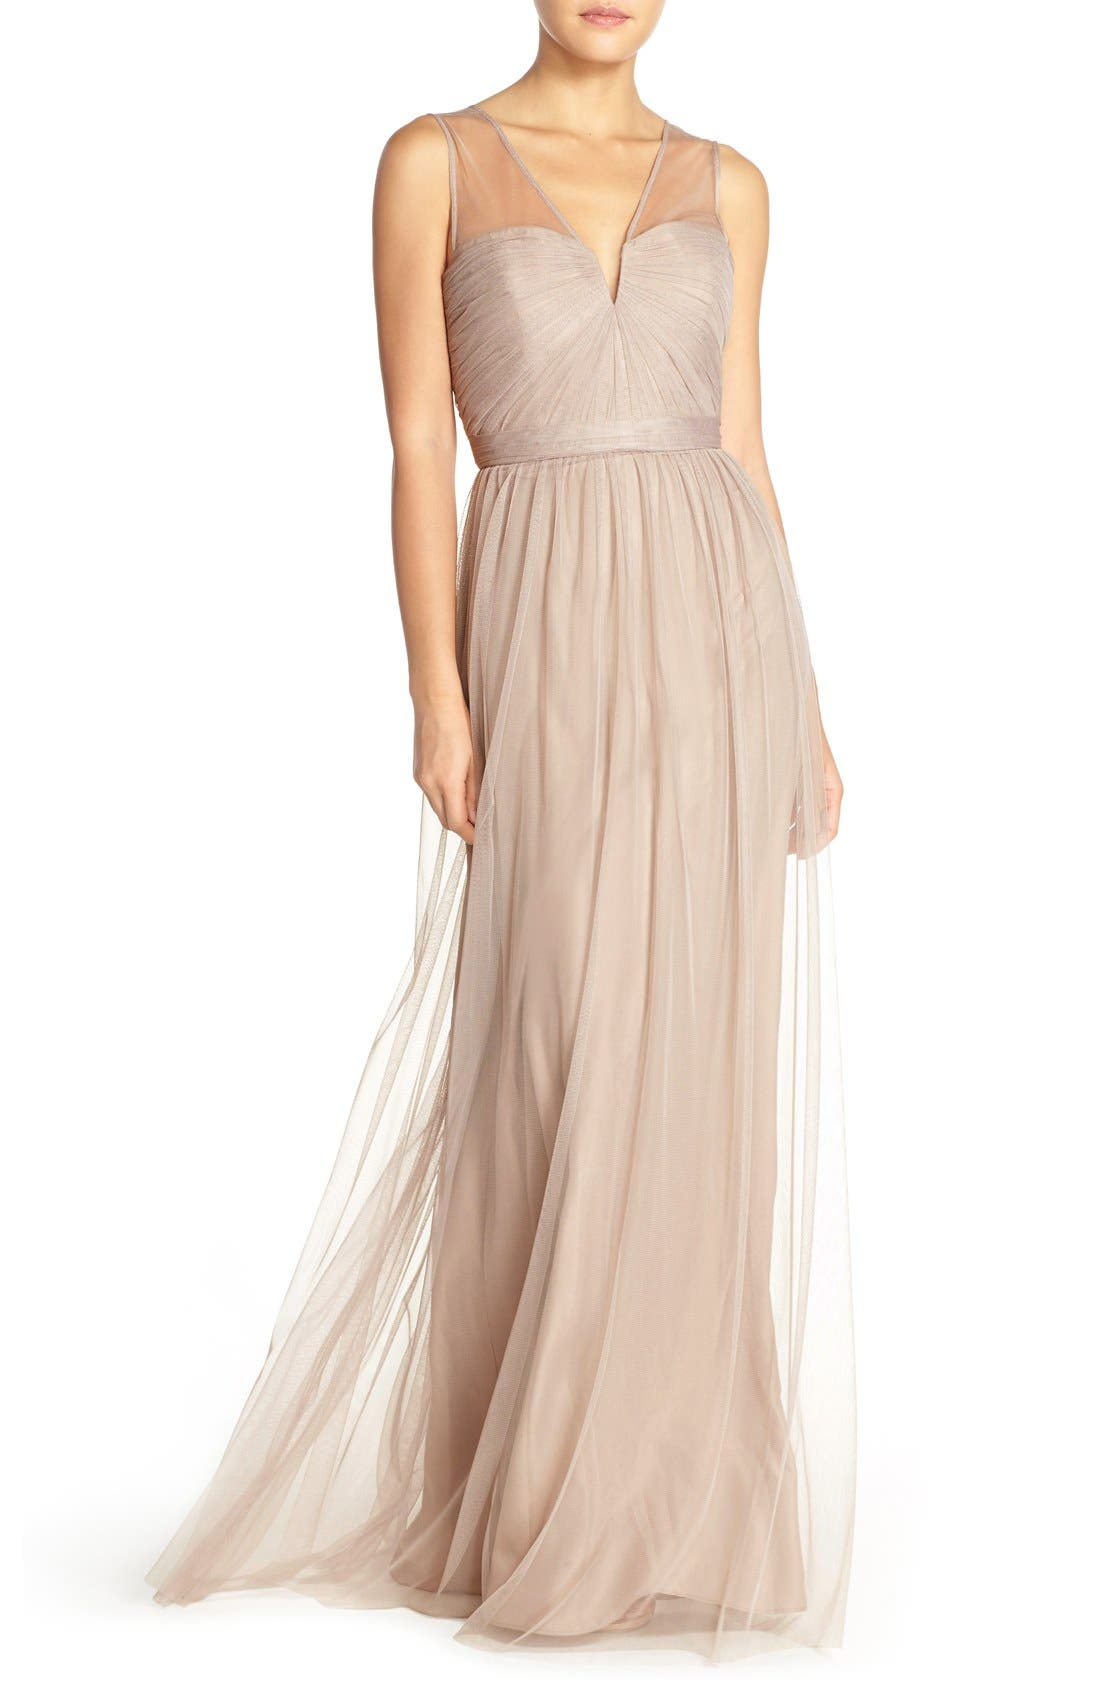 Amsale 'Alyce' Illusion V-Neck Pleat Tulle Gown